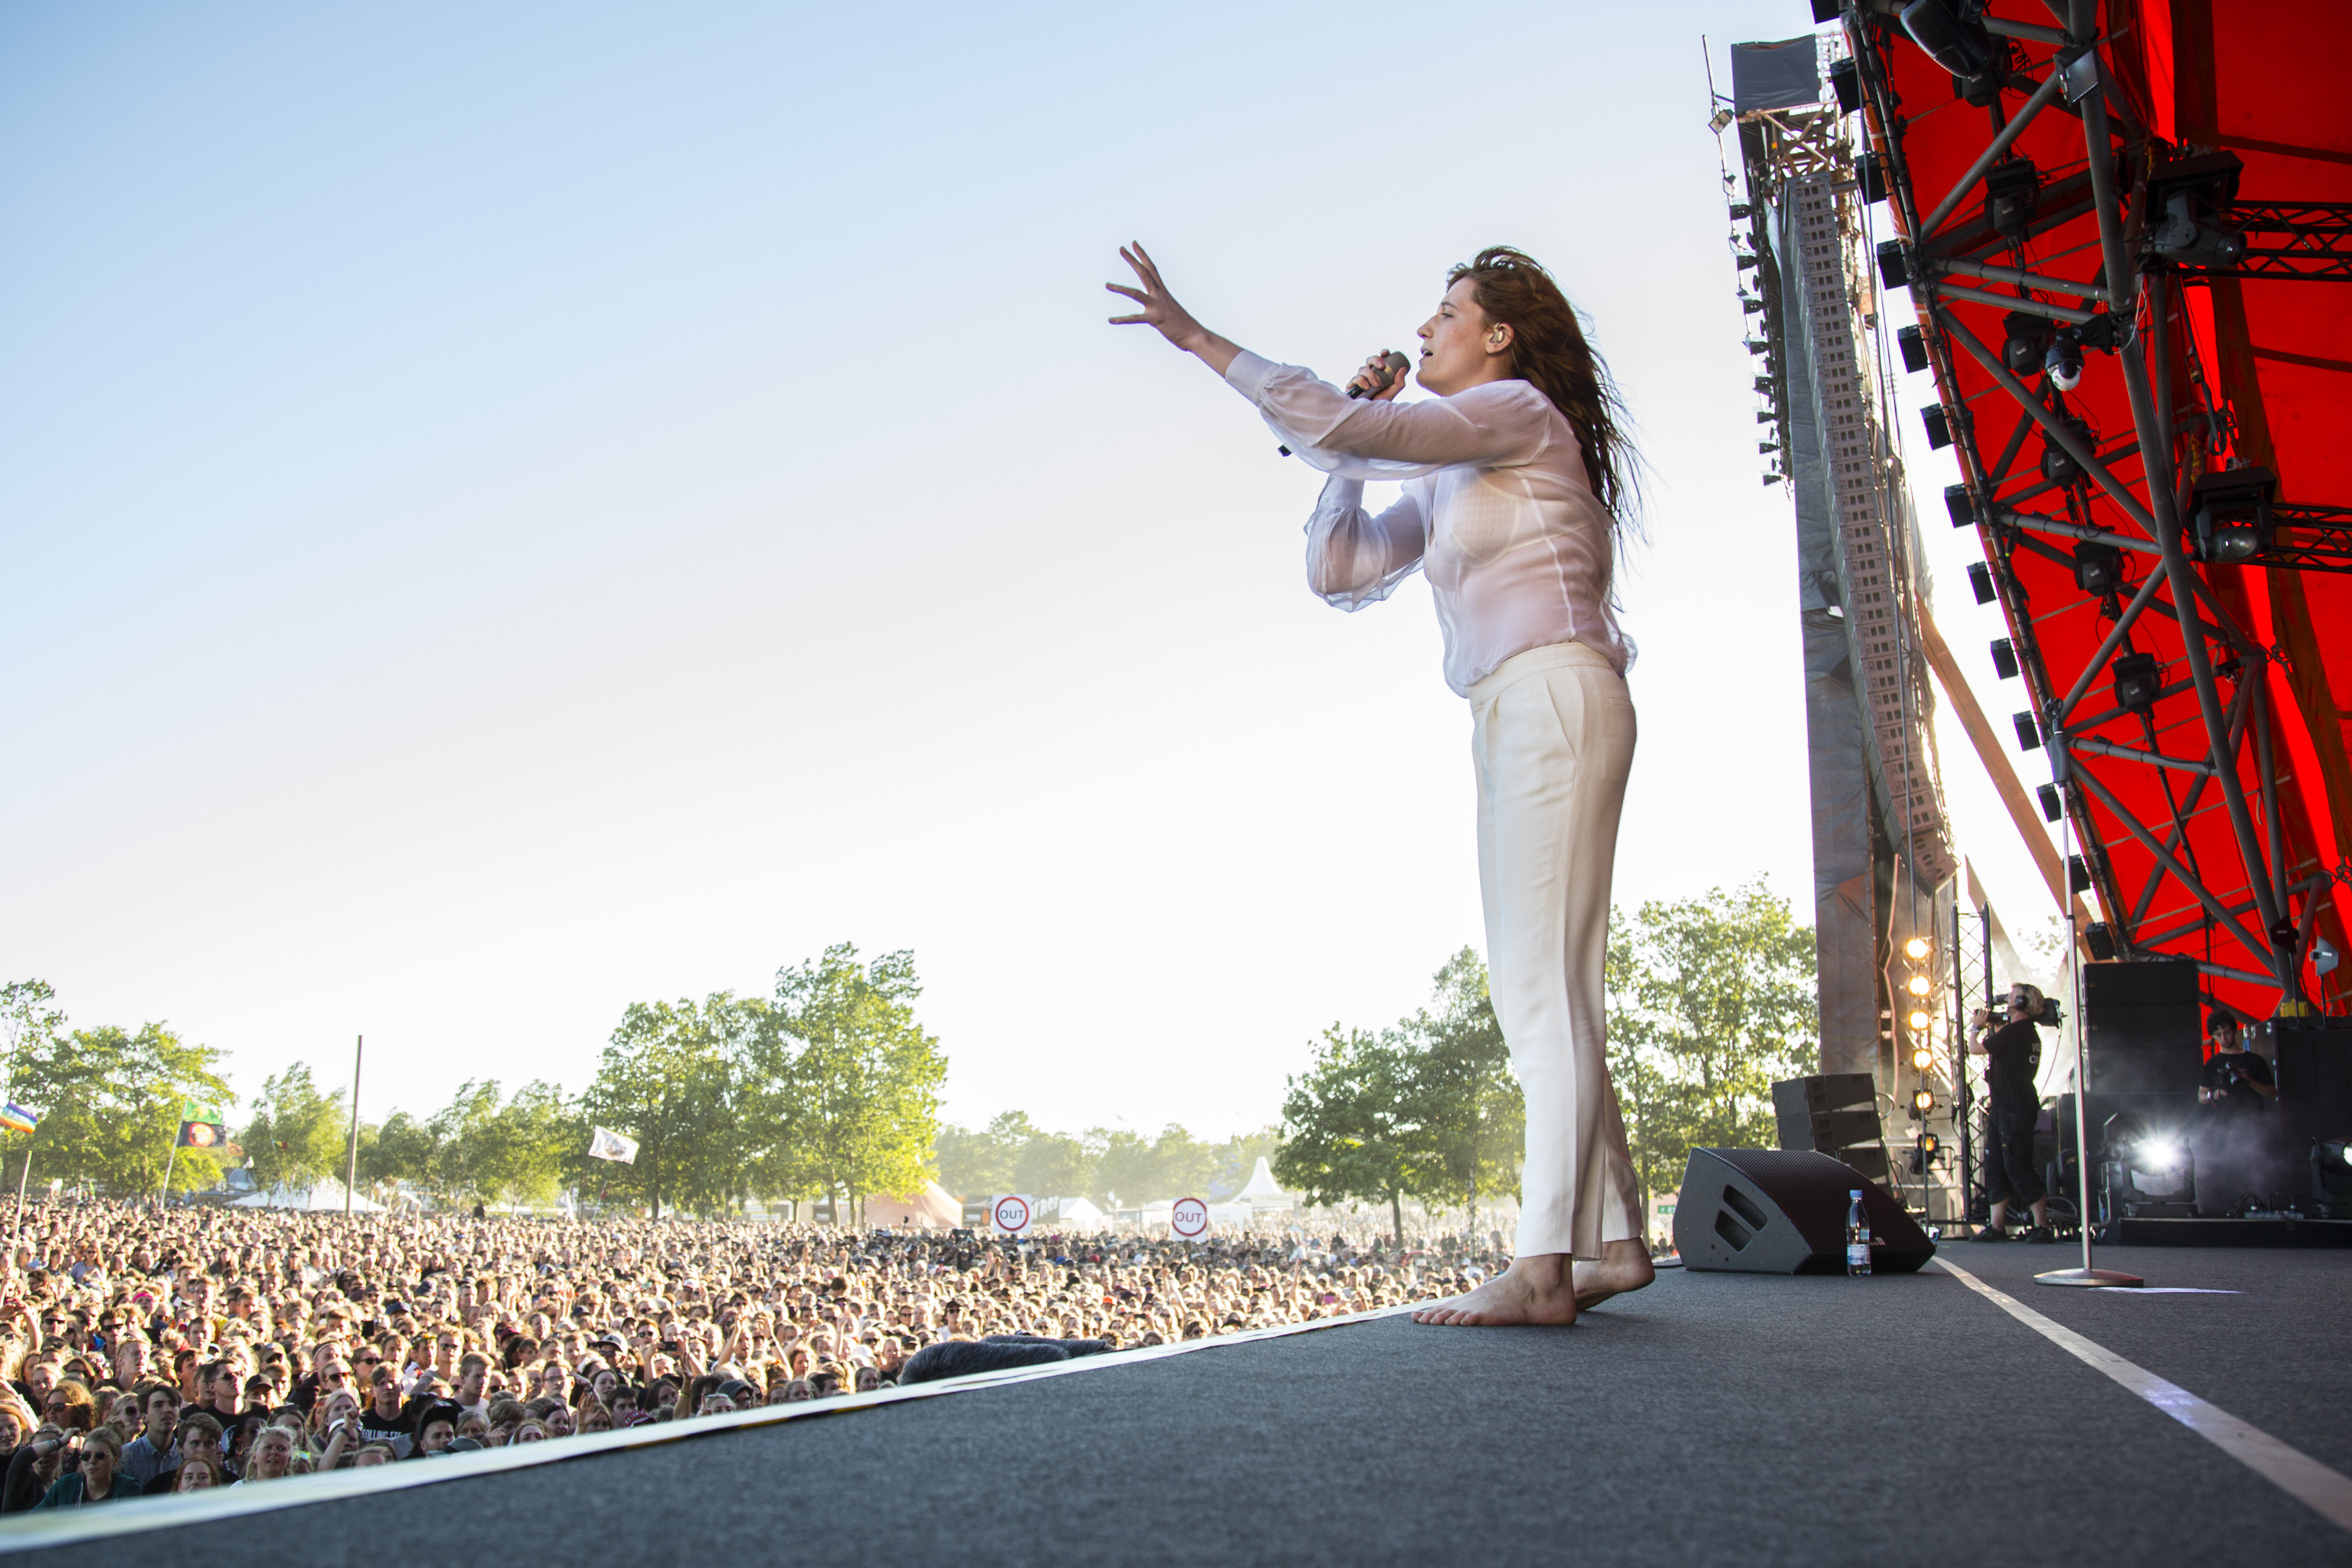 ROSKILDE, DENMARK - JULY 02:  Florence Welch from Florence and the Machine performs at Roskilde Festival on July 2, 2015 in R